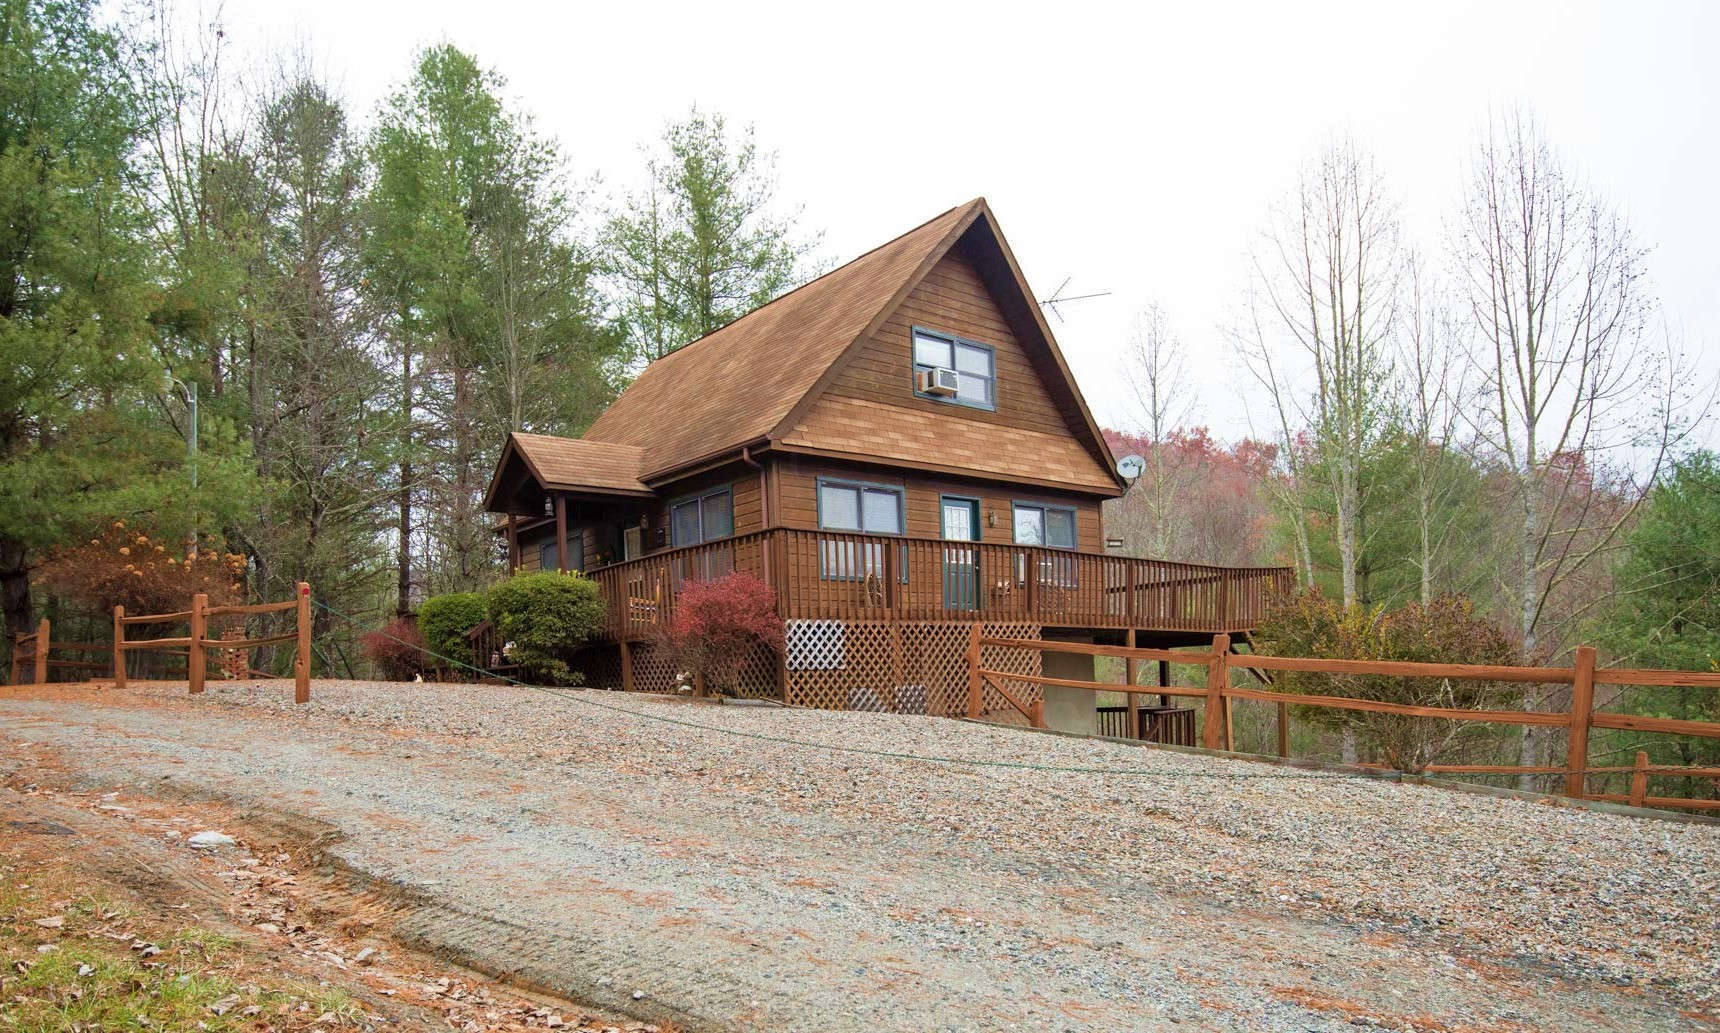 BLUERIDGE MOUNTAIN CABIN nestled on a peaceful .82 acre setting on Happy Forest Drive in the River Lake community of Piney Creek in Alleghany County, this 2-bedroom, plus bonus room, 2-bath cabin is a great option for your mountain retreat or primary residence.